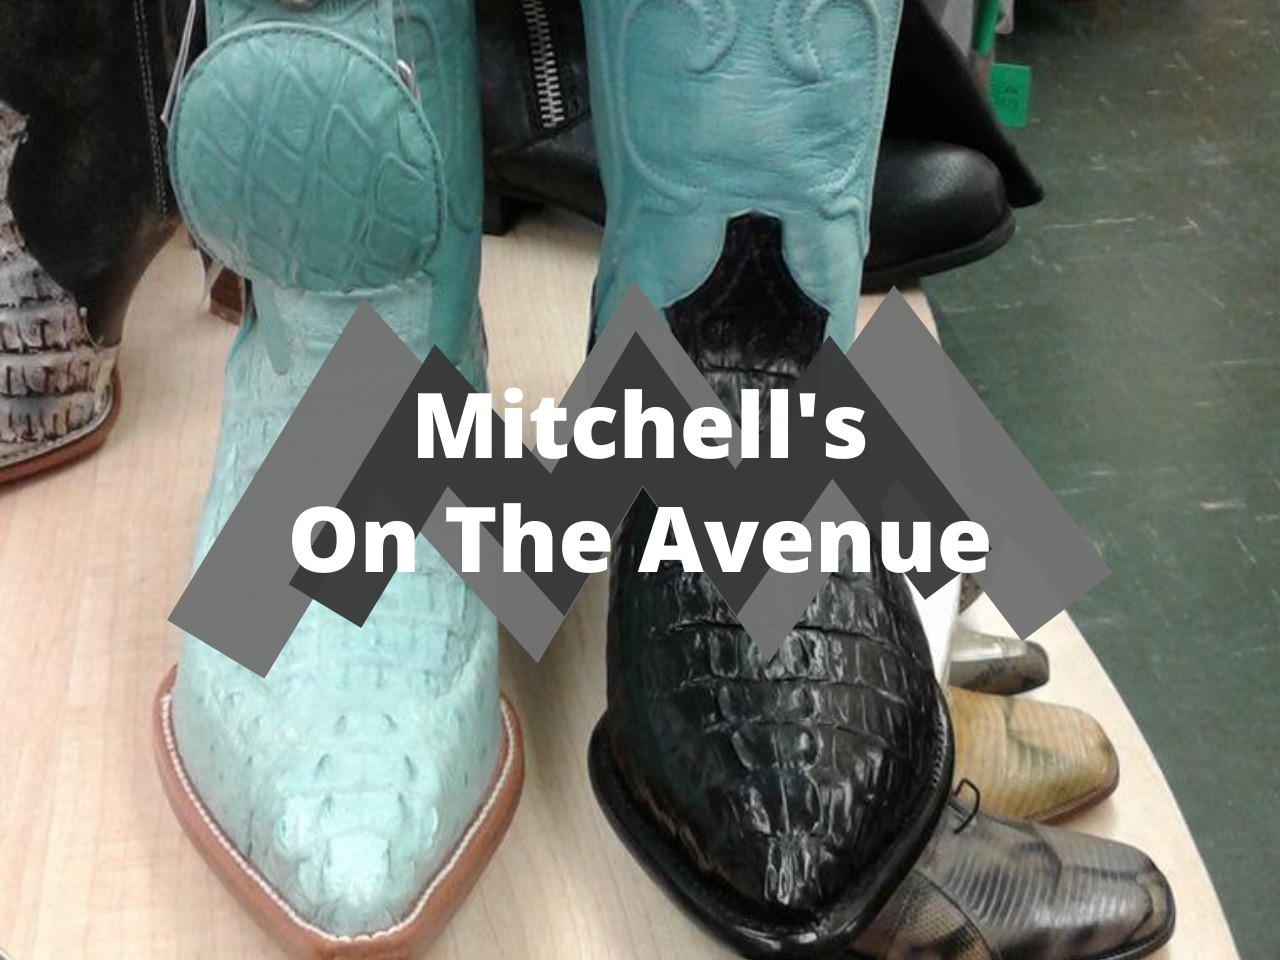 Mitchell's On The Avenue